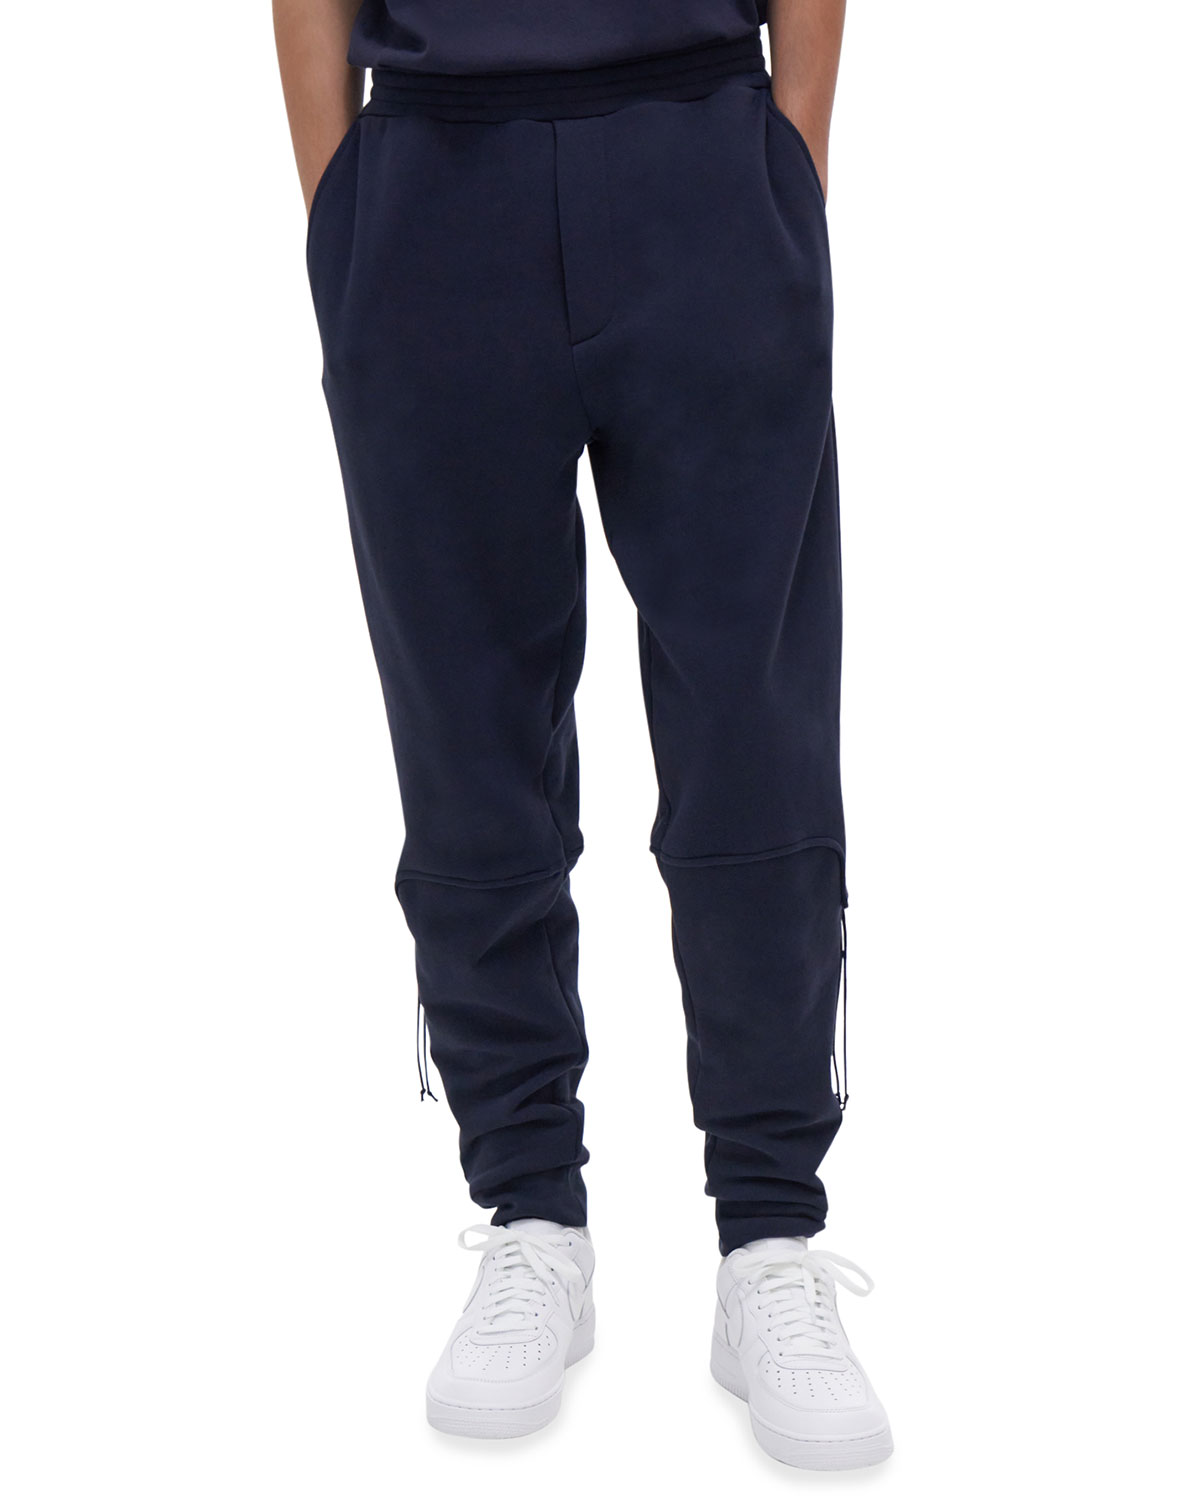 Helmut Lang MEN'S LOOSE FRENCH TERRY LACED SWEATPANTS